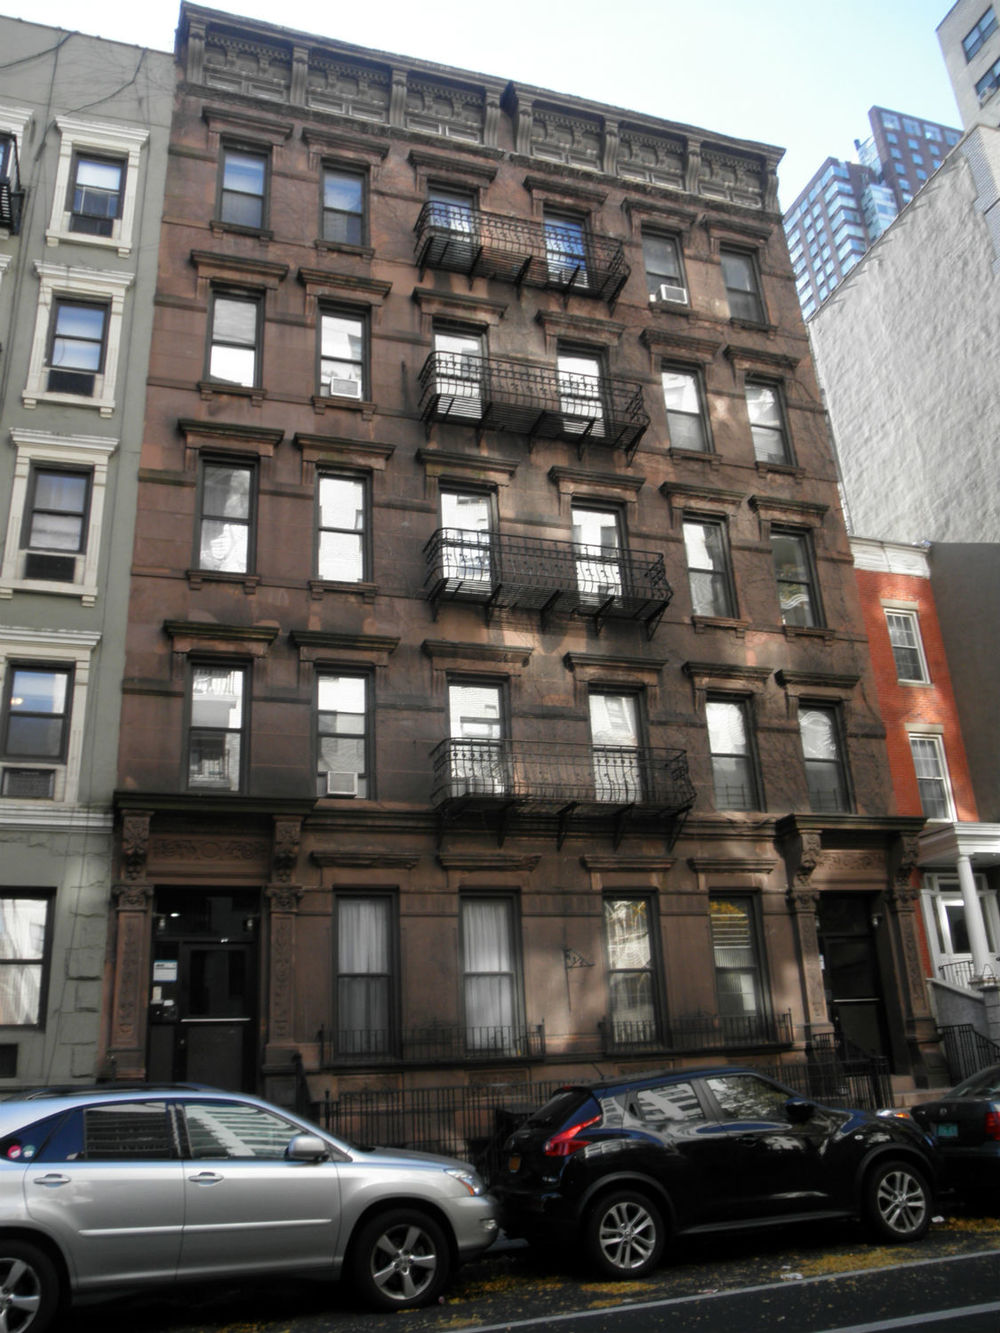 ▹East Village, NY ▹$6,250,000 ▹Permanent Financing ▹24 unit Mixed Use Multifamily